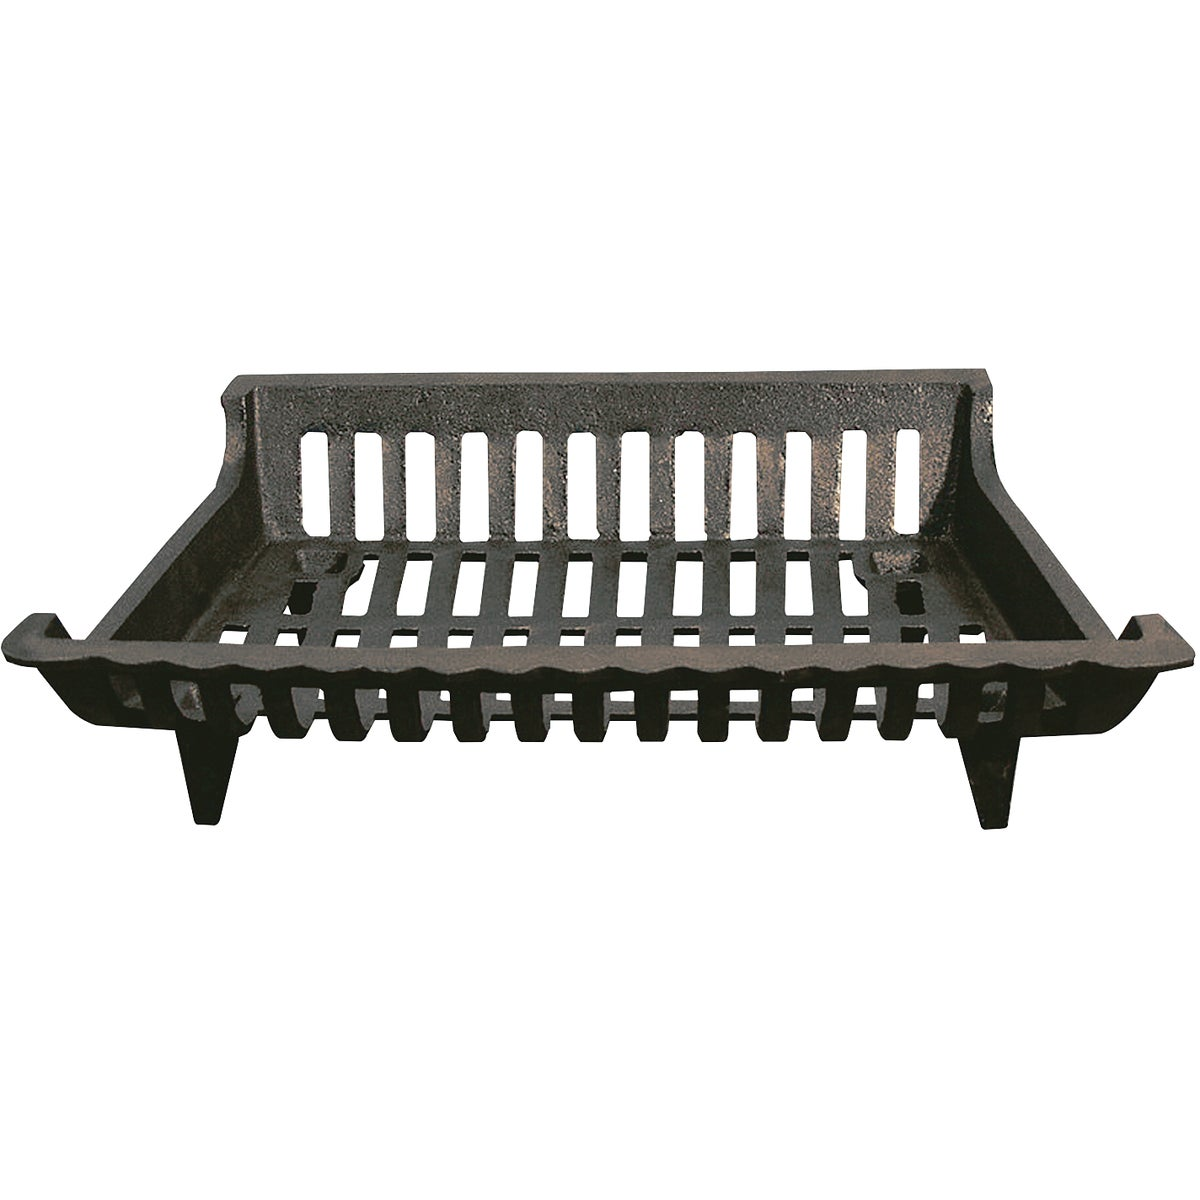 "18"" CAST IRON GRATE - 1330129 by Do it Best"